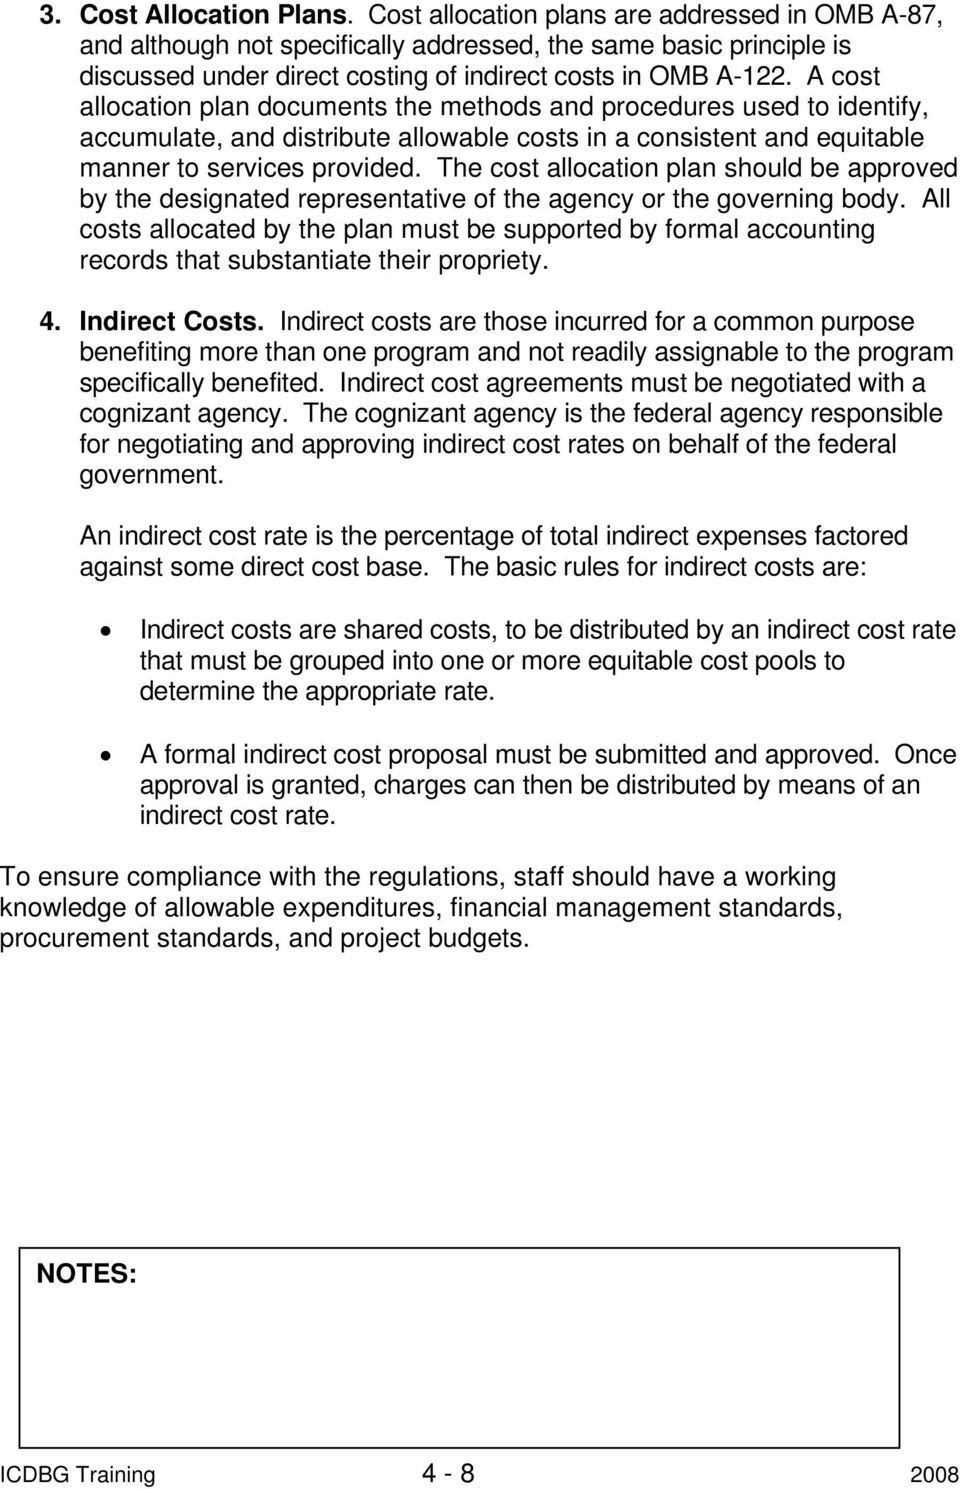 A cost allocation plan documents the methods and procedures used to identify, accumulate, and distribute allowable costs in a consistent and equitable manner to services provided.